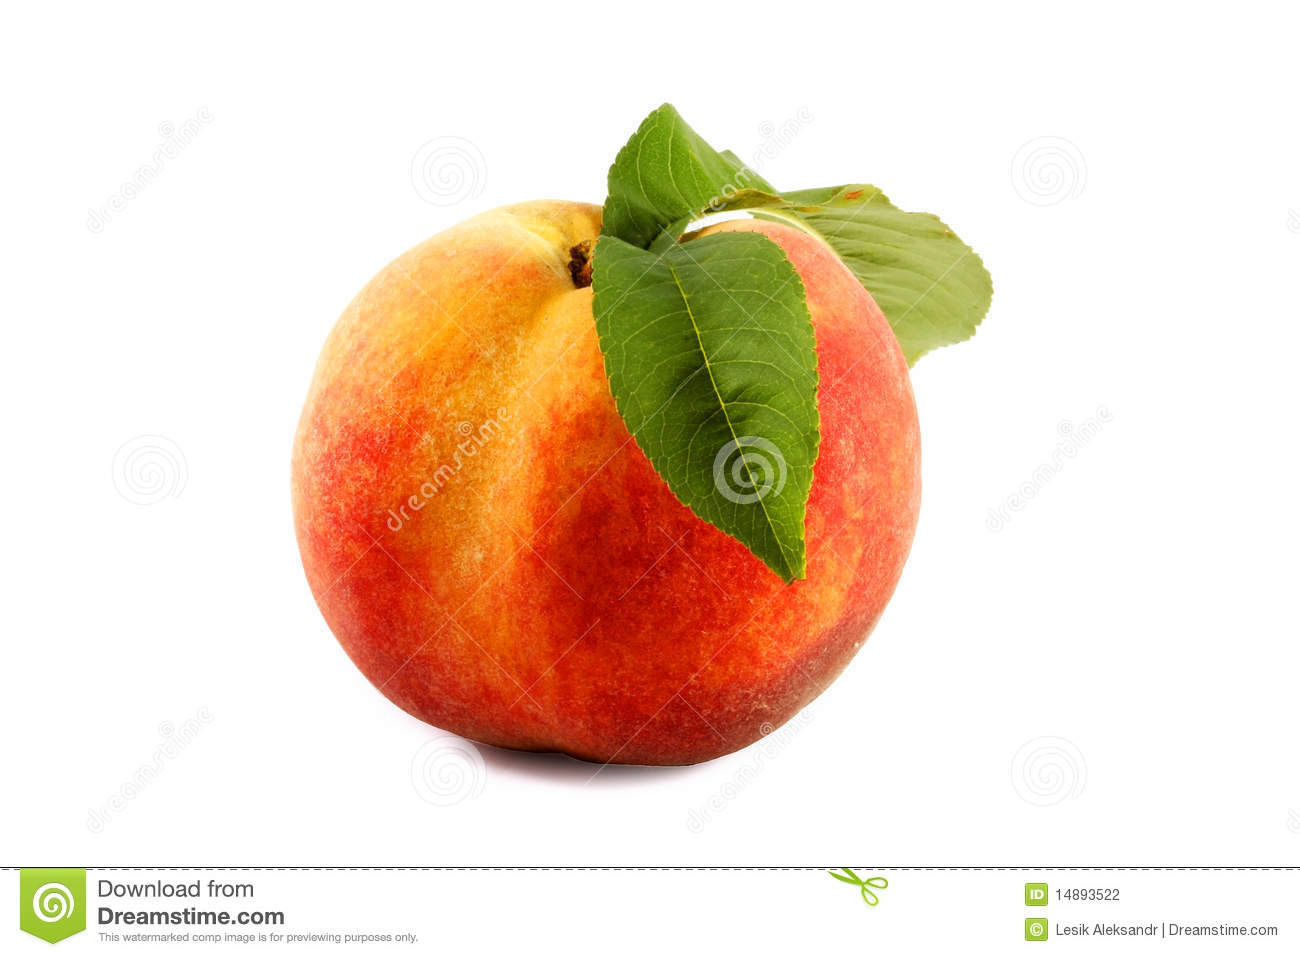 how to tell if peach is ripe